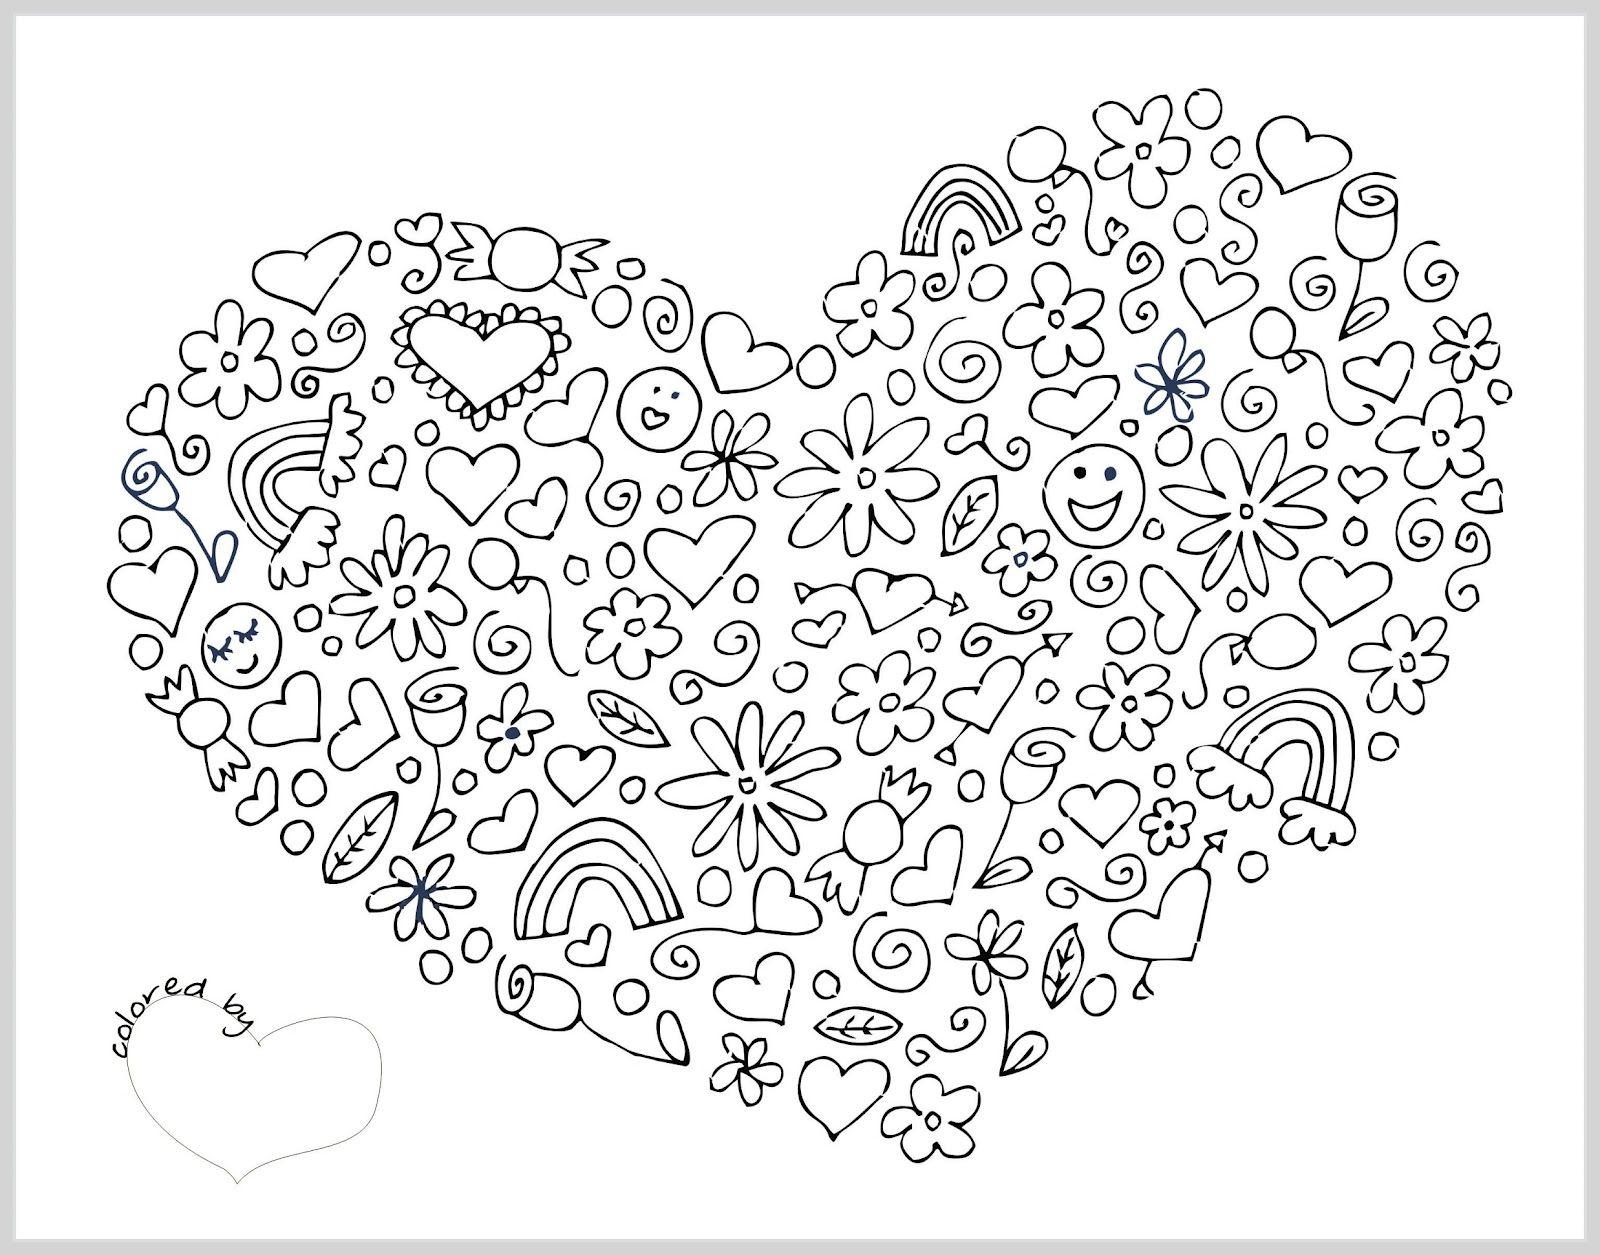 Free coloring pages for adults - Free Coloring Pages For Adults Printable Hard To Color Coloring